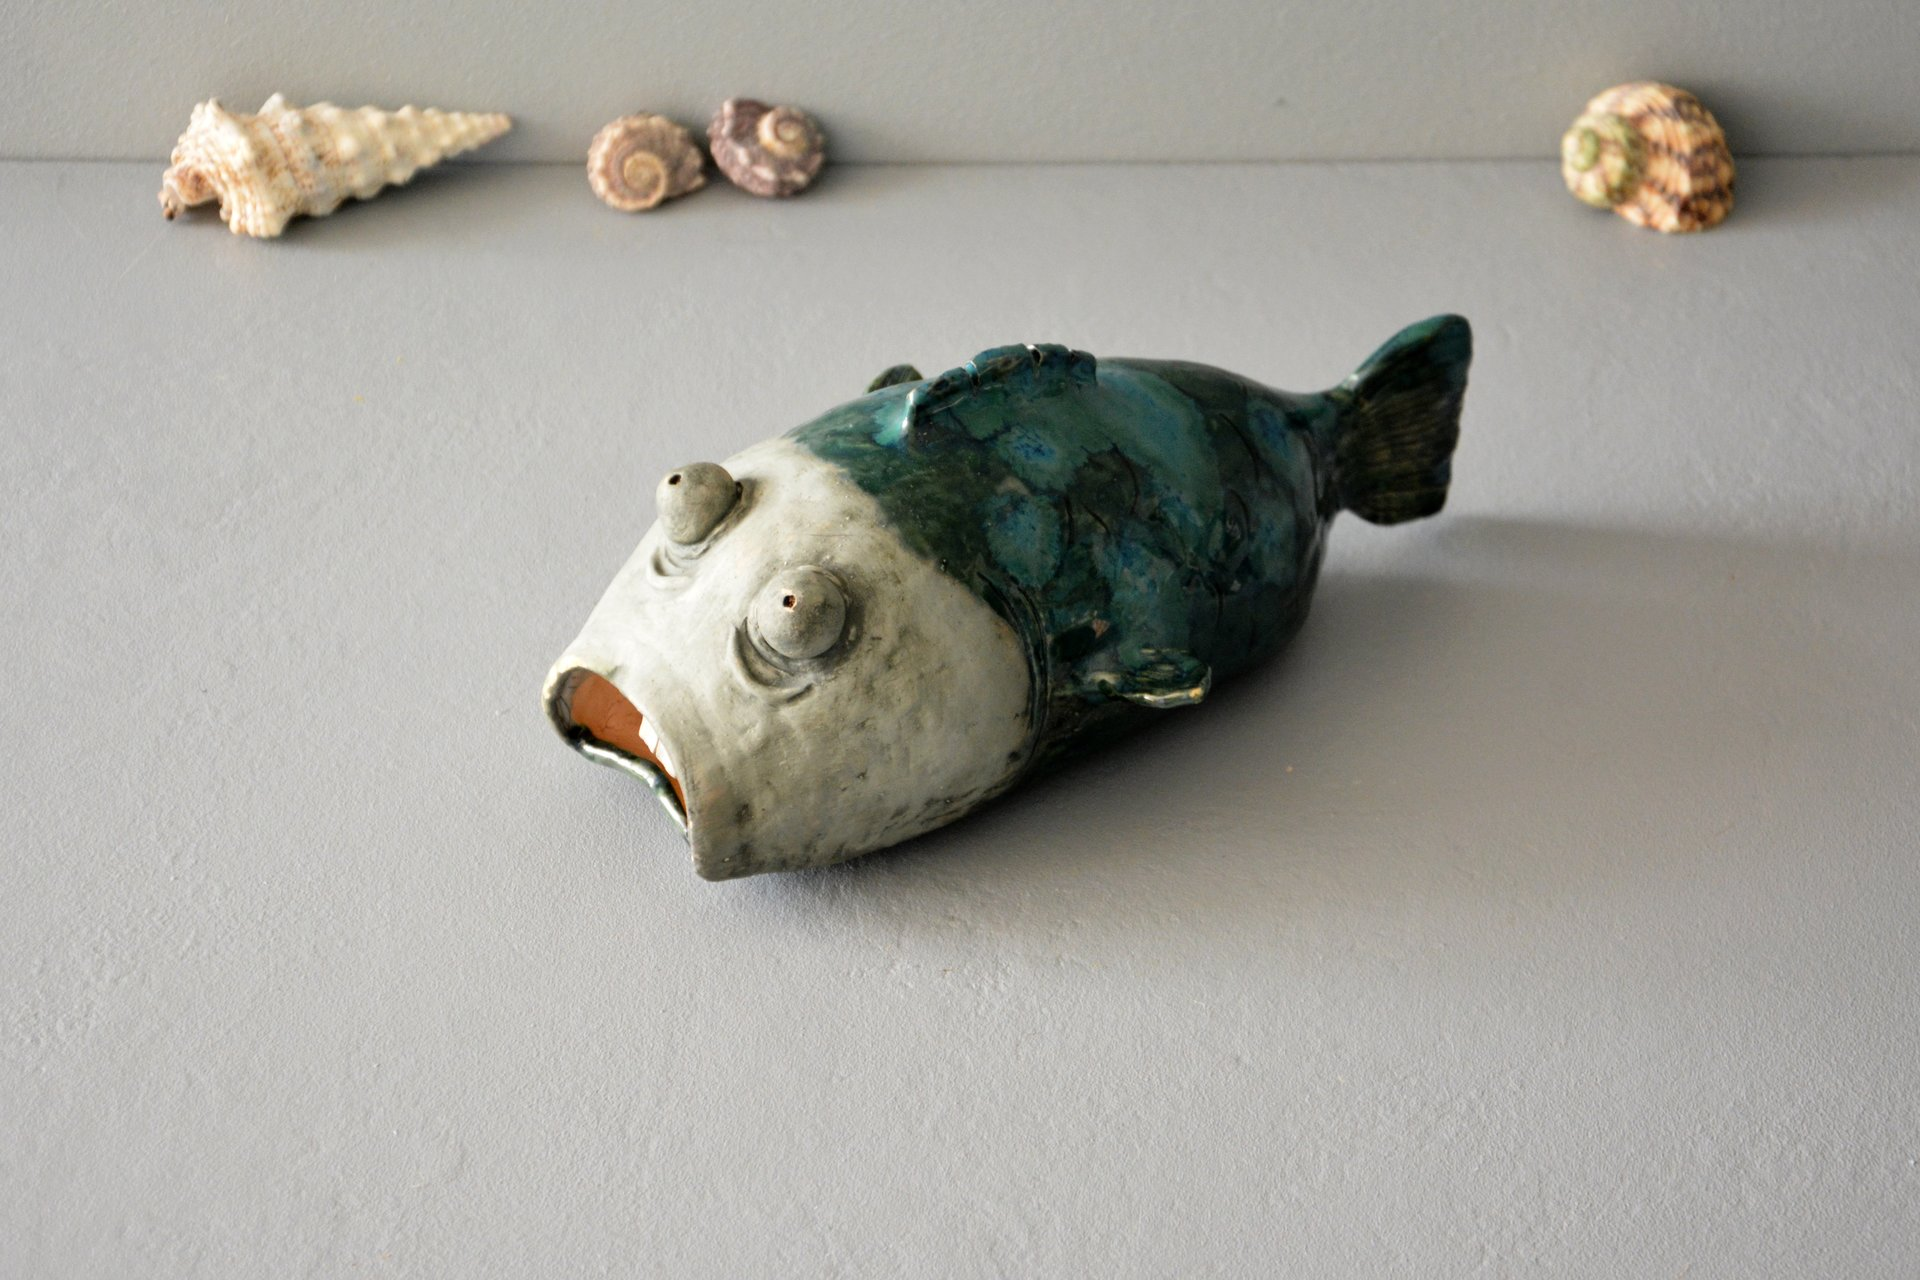 A figurine of a big fish made of clay, высота - 15 см, длина - 24 см, ширина - 11 см, photo 4 of 6.